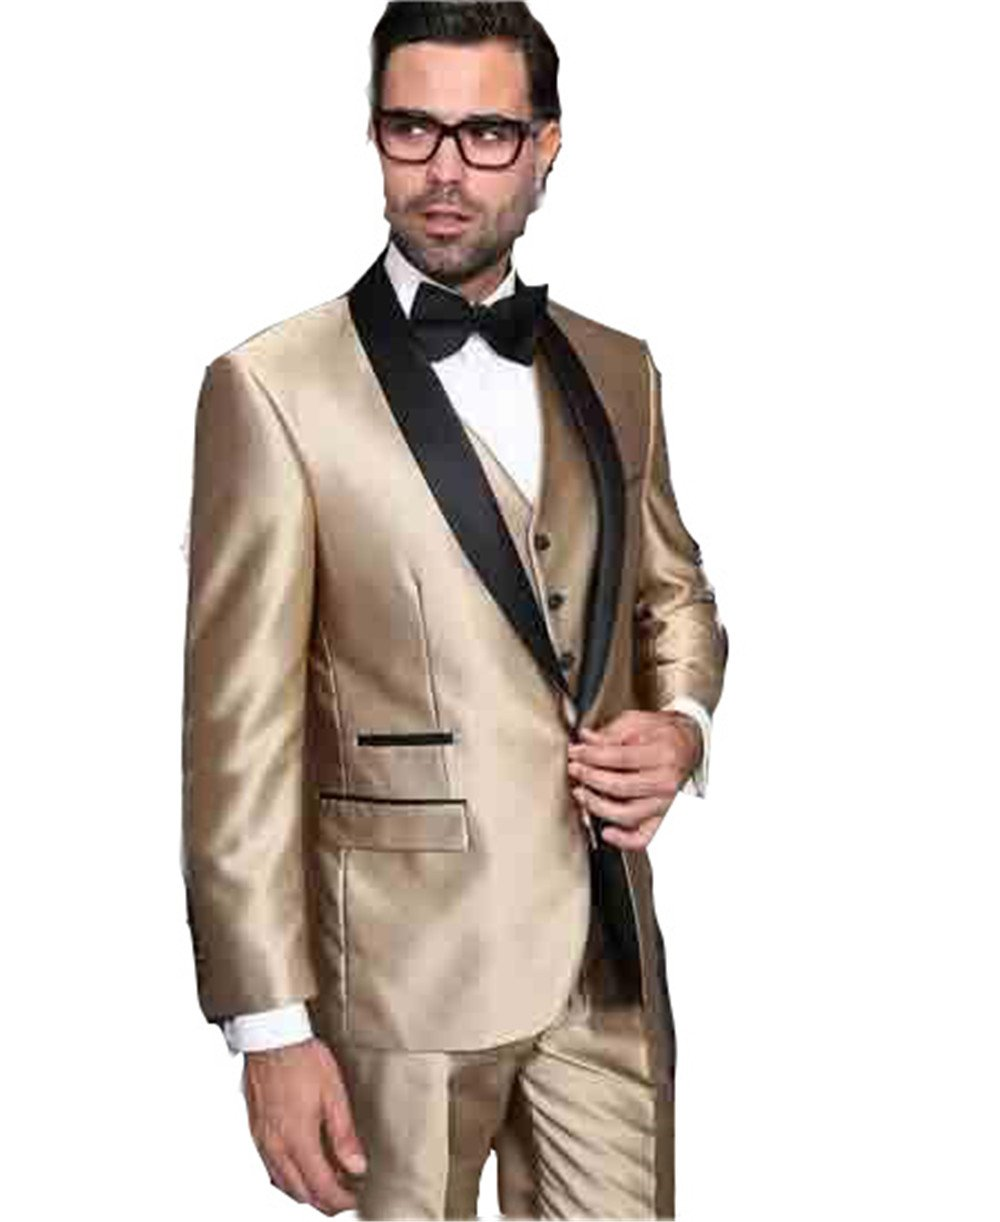 Gold and Black 3 Piece Shiny Tuxedos Men Slim Fit Suit Notch Lapel Groomsmen Tuxedos Groom Men Wedding Suits (Jacket+Pant+Vest) by Brightmenyouth